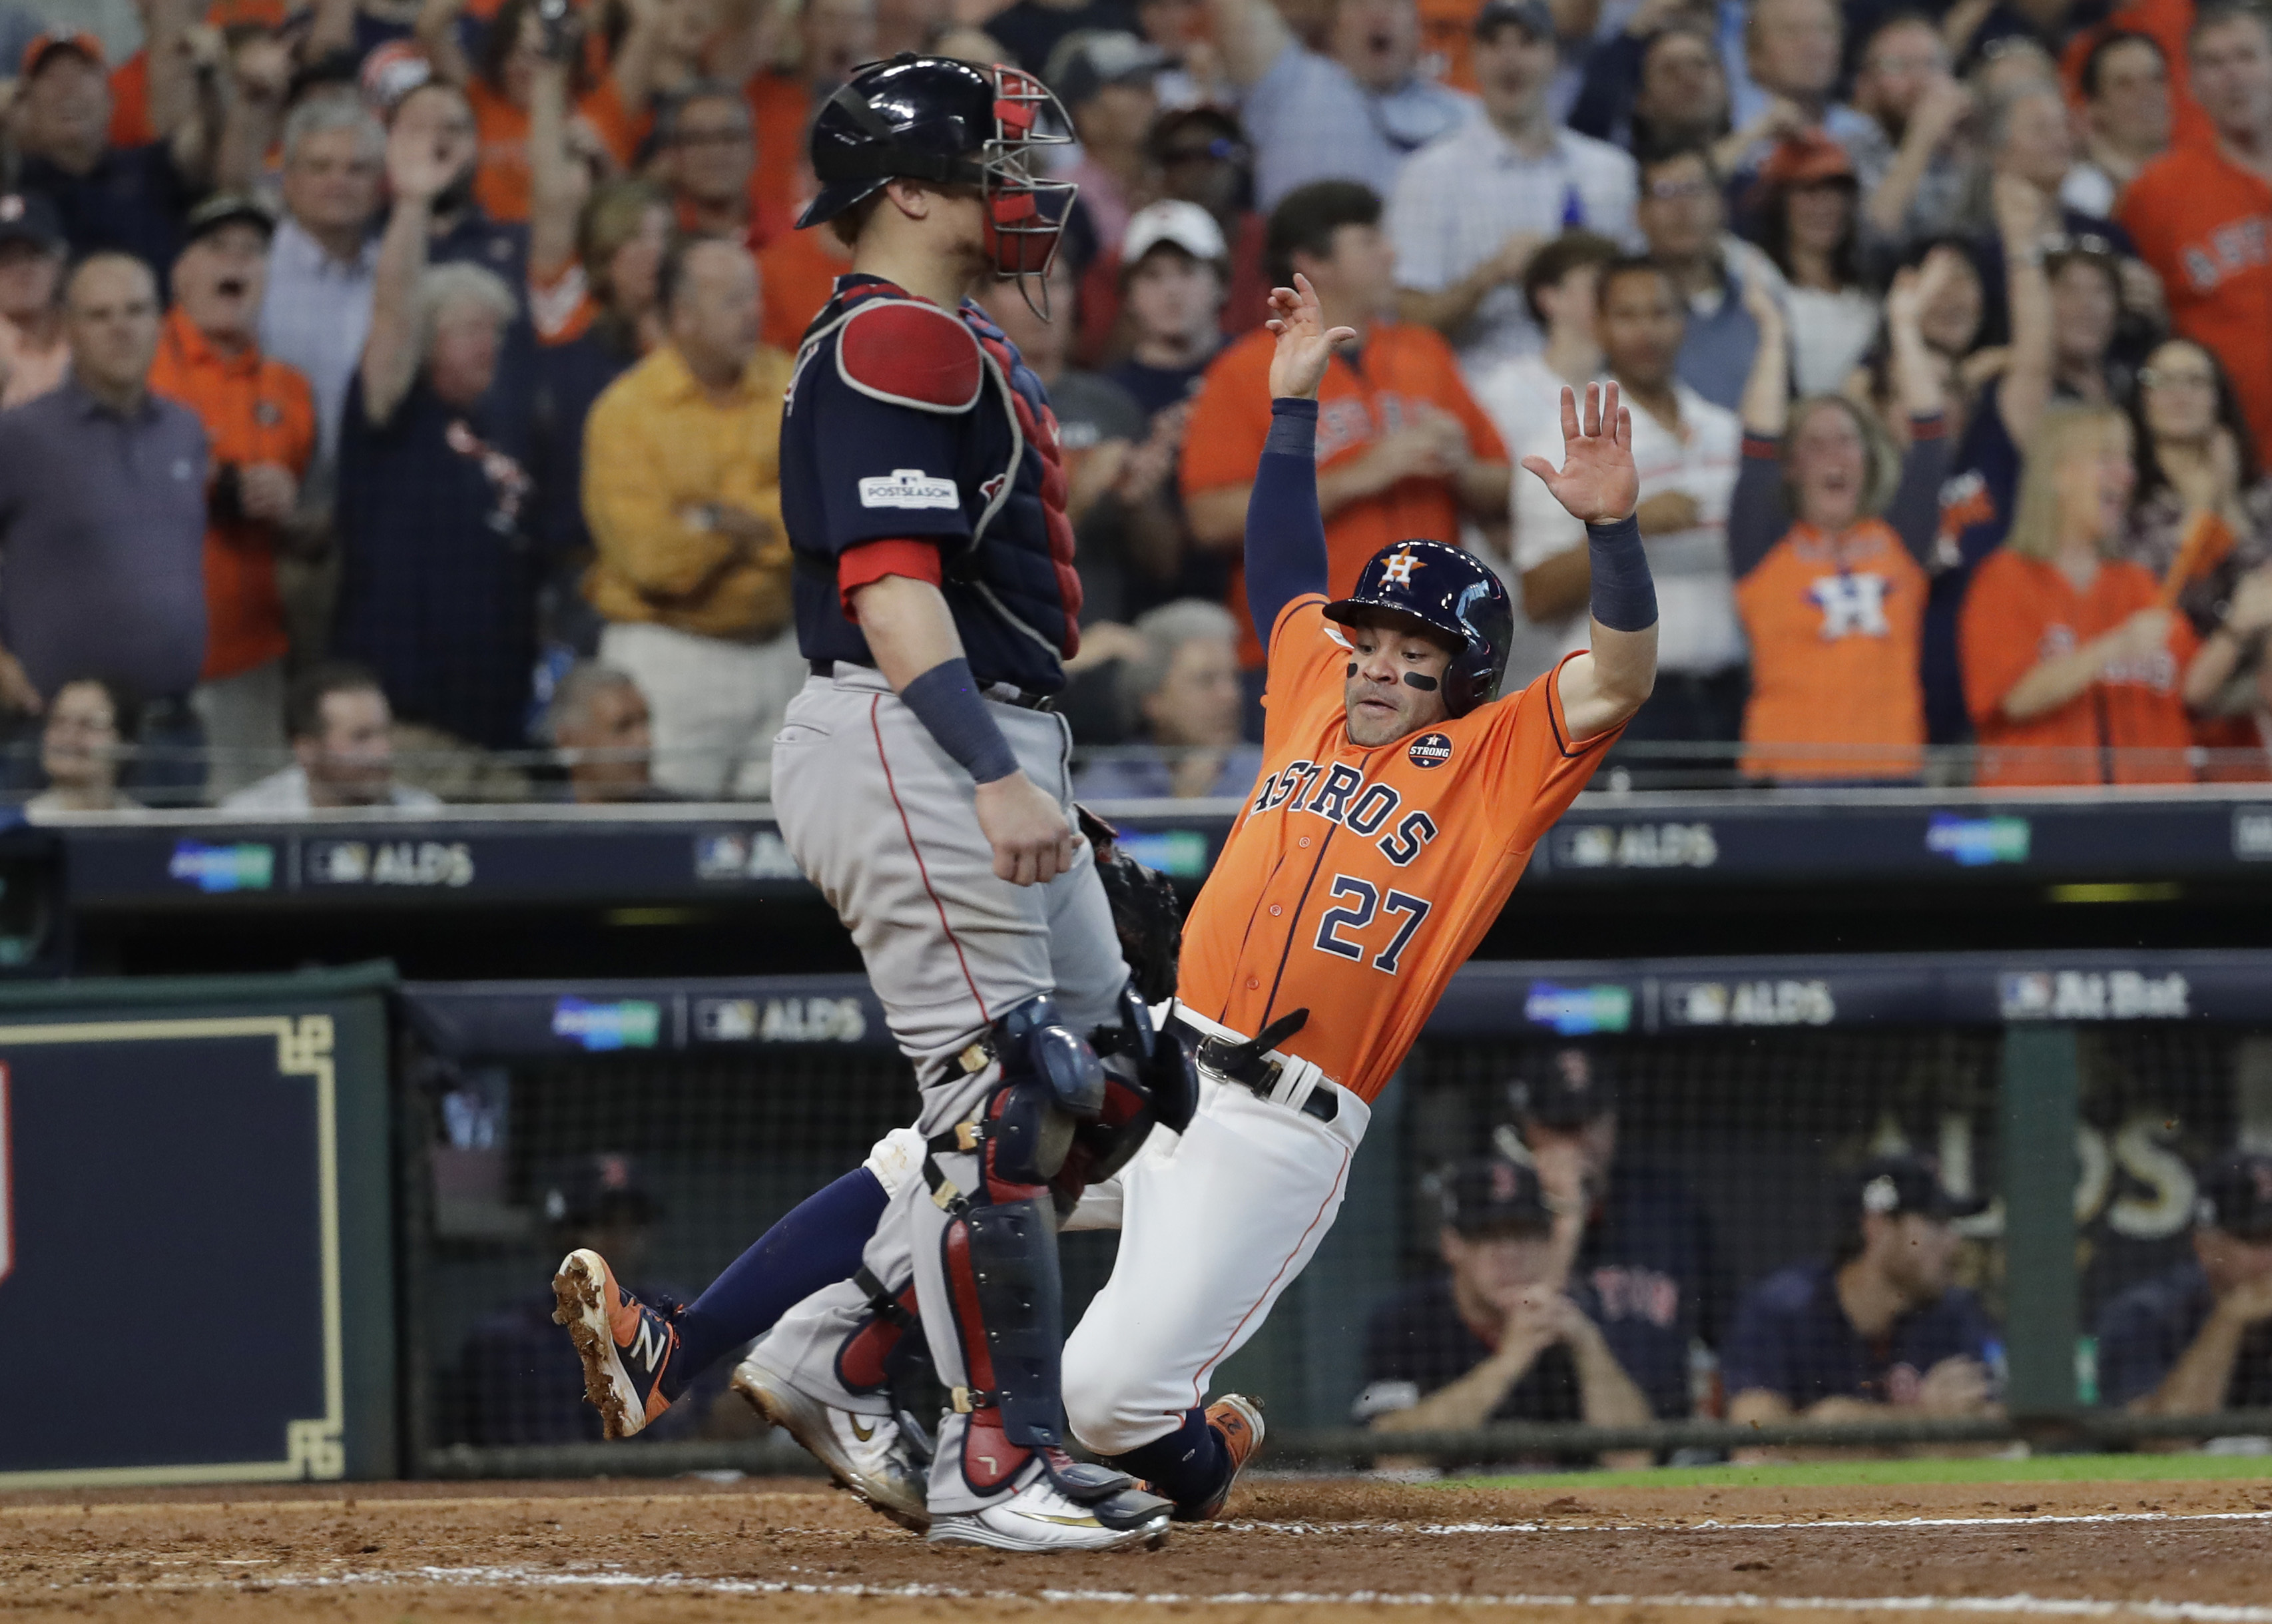 <div class='meta'><div class='origin-logo' data-origin='AP'></div><span class='caption-text' data-credit='David J. Phillip'>Houston Astros' Jose Altuve (27) scores past Boston Red Sox catcher Christian Vazquez (7) on teammate Carlos Correa's double during the sixth inning in Game 2.</span></div>